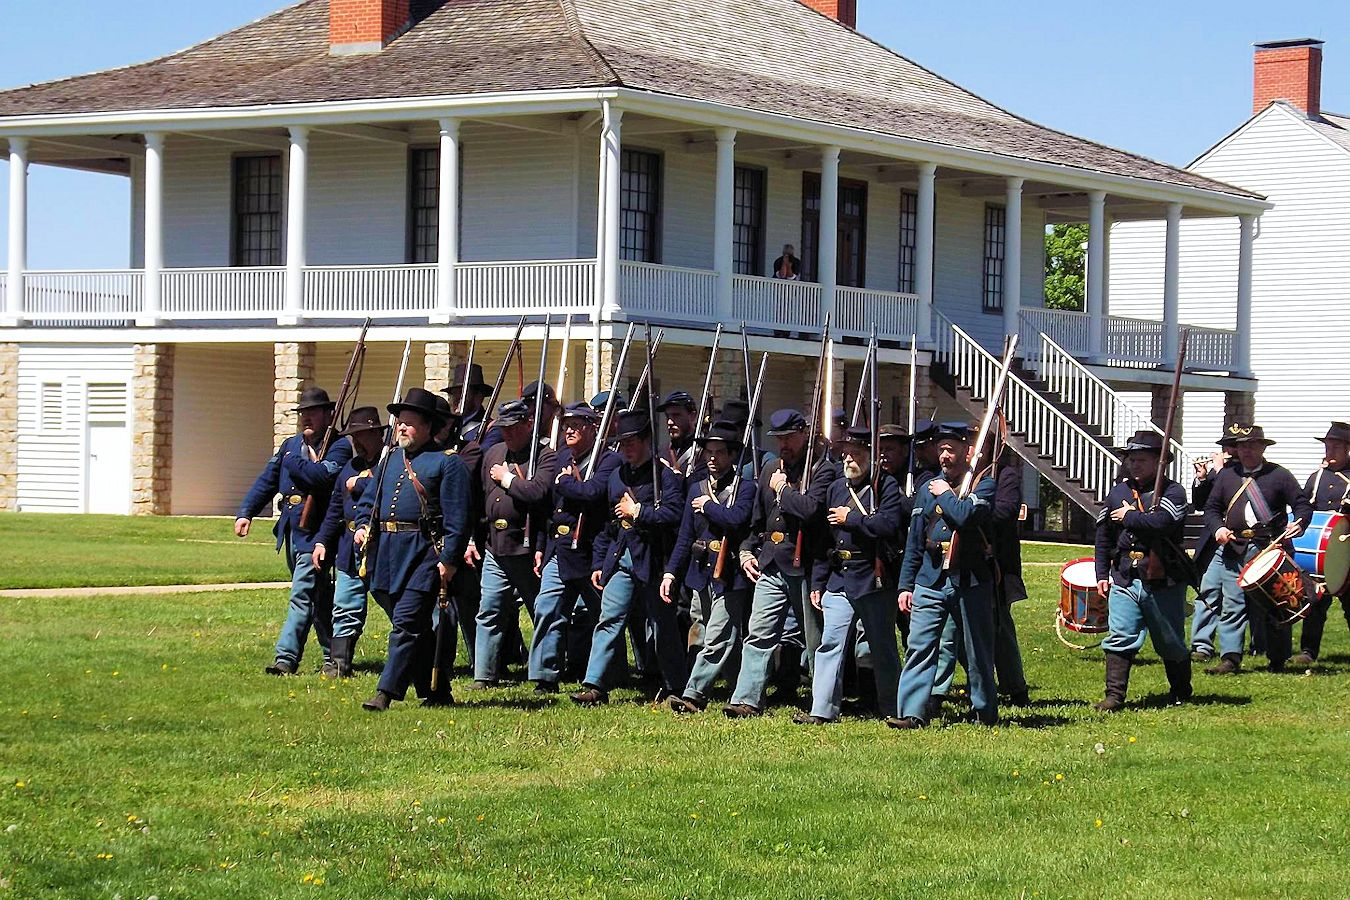 Fort Scott Ks >> 2019 Fort Scott Civil War Encampment Civil War Living